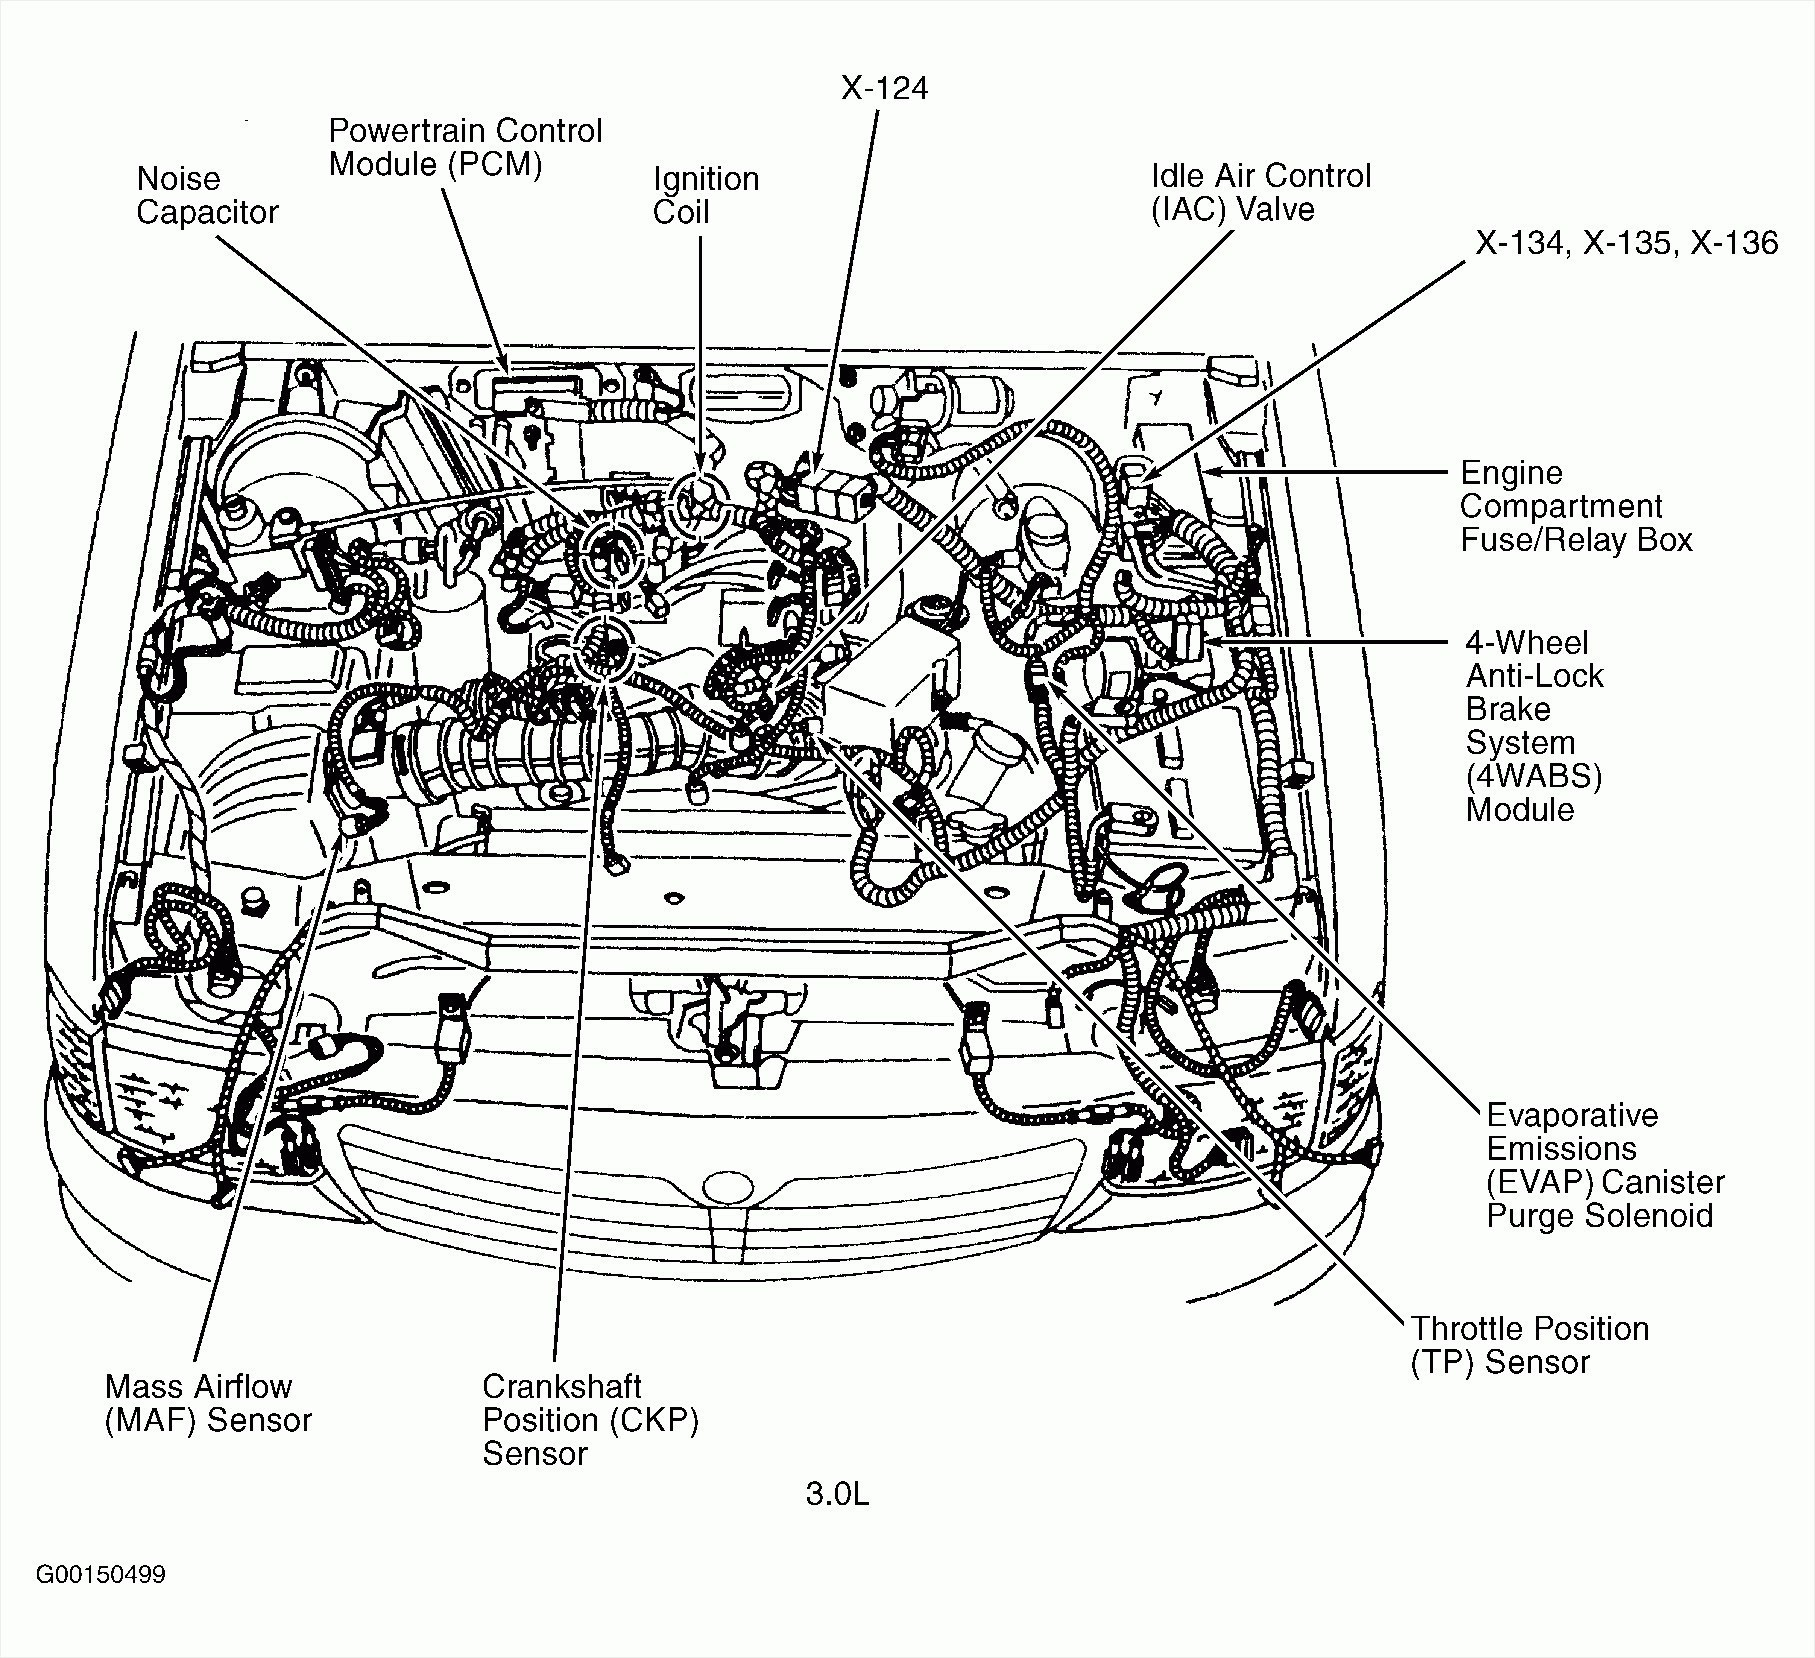 Basic Car Parts Diagram 96 Ta A Engine Parts Diagram Wiring Diagram Datasource Of Basic Car Parts Diagram